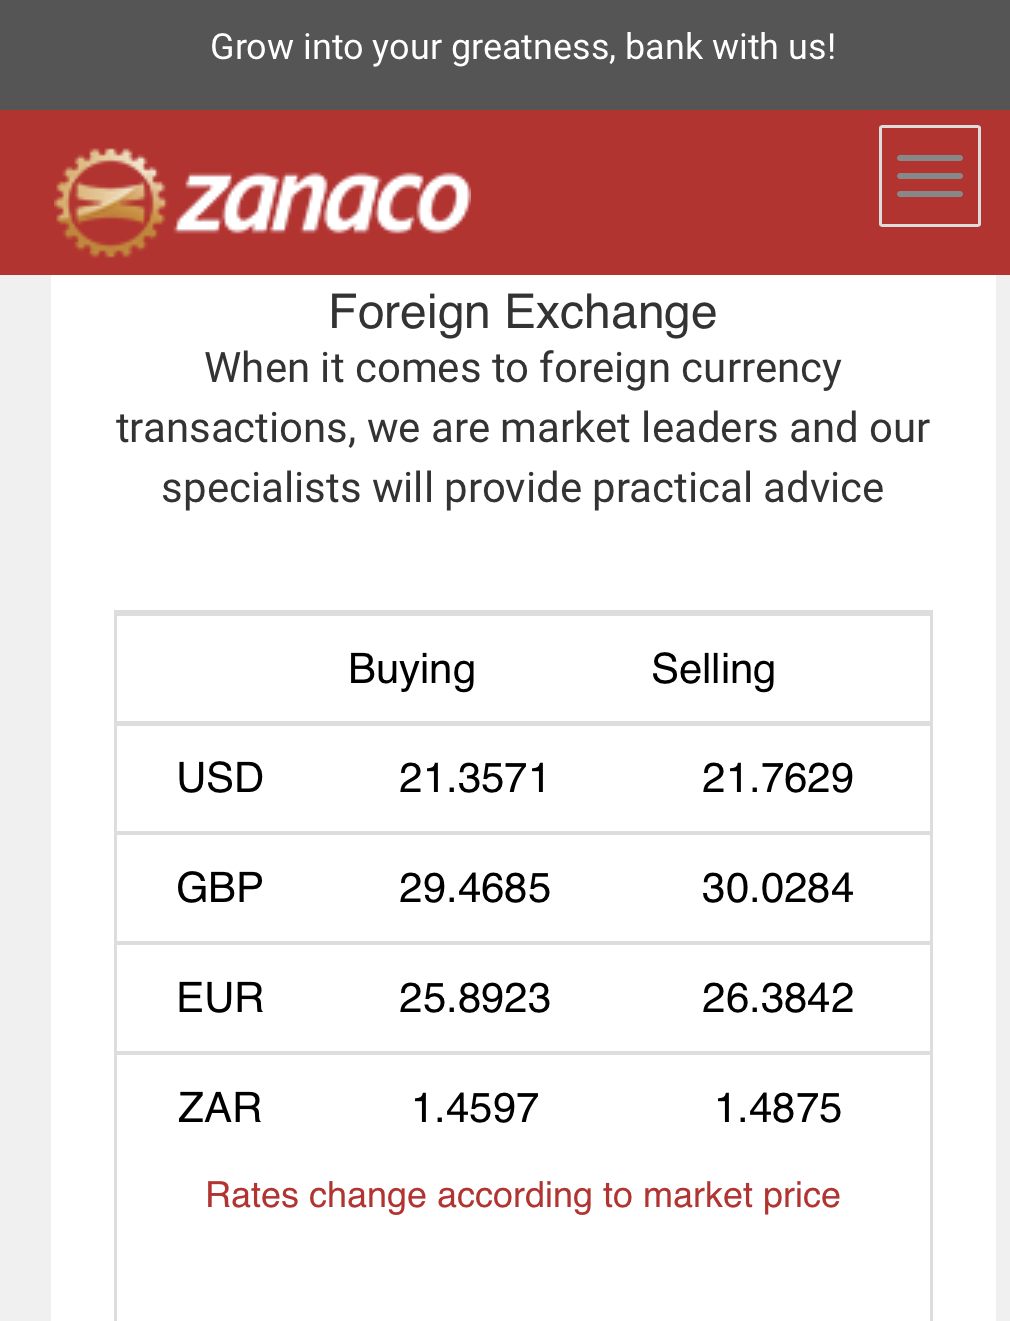 Kwacha to lose more value next week